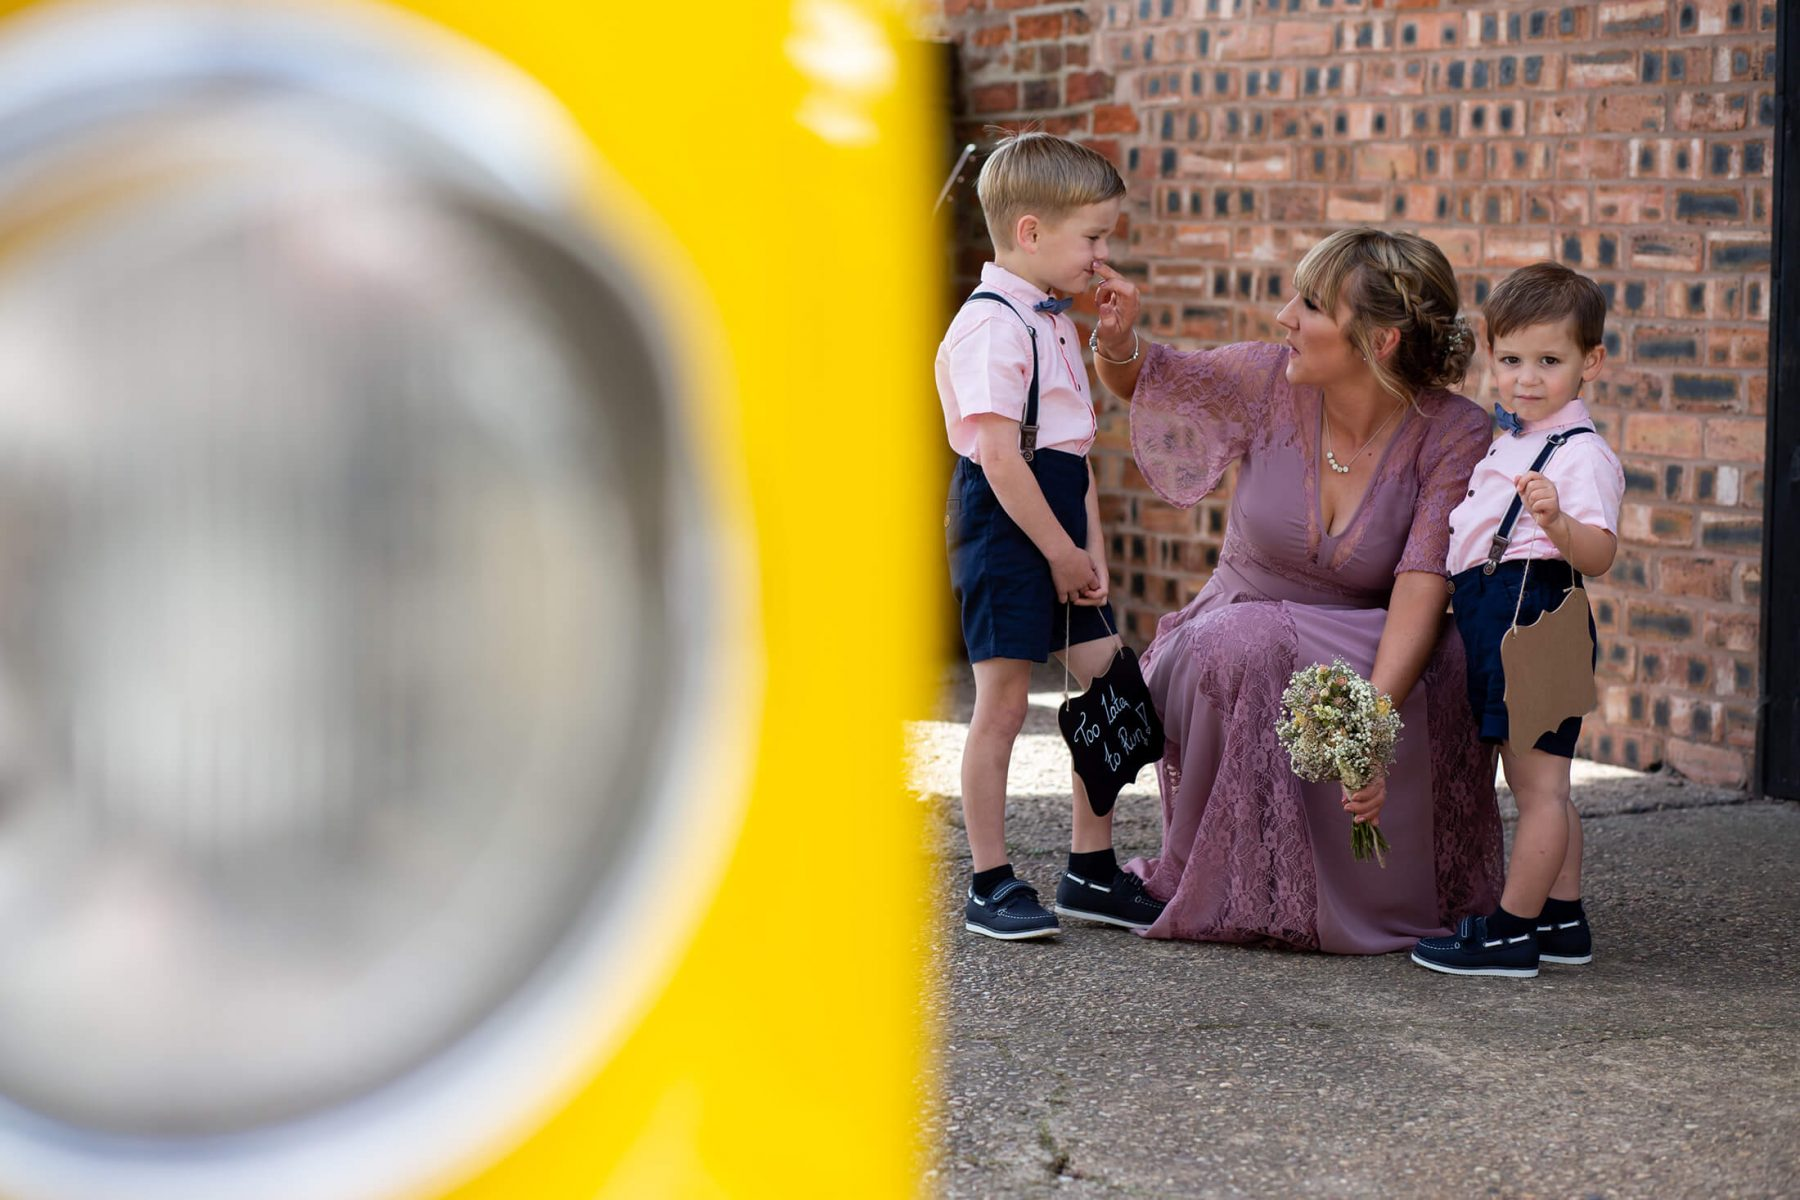 A mother wipes her sons mouth before the wedding